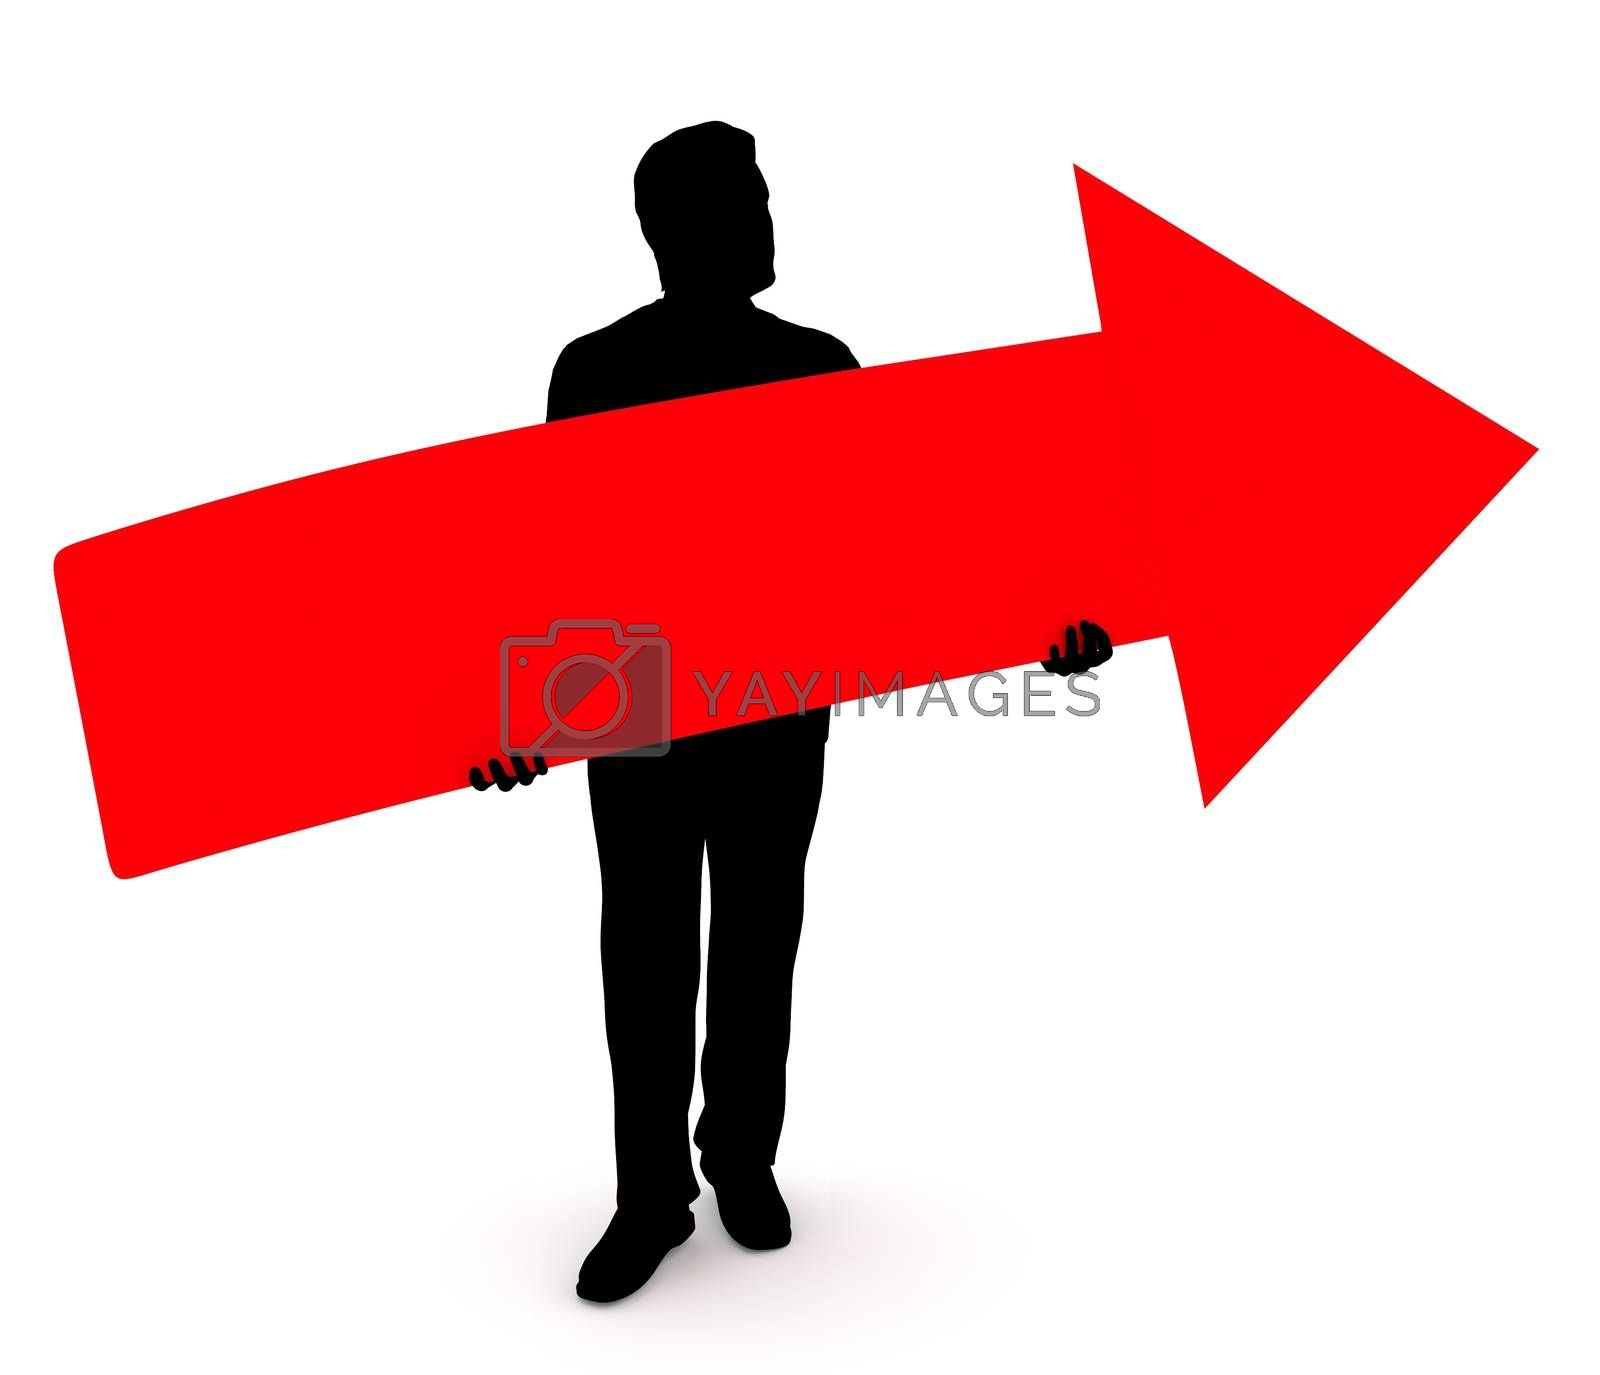 Illustration of a man holding a red arrow